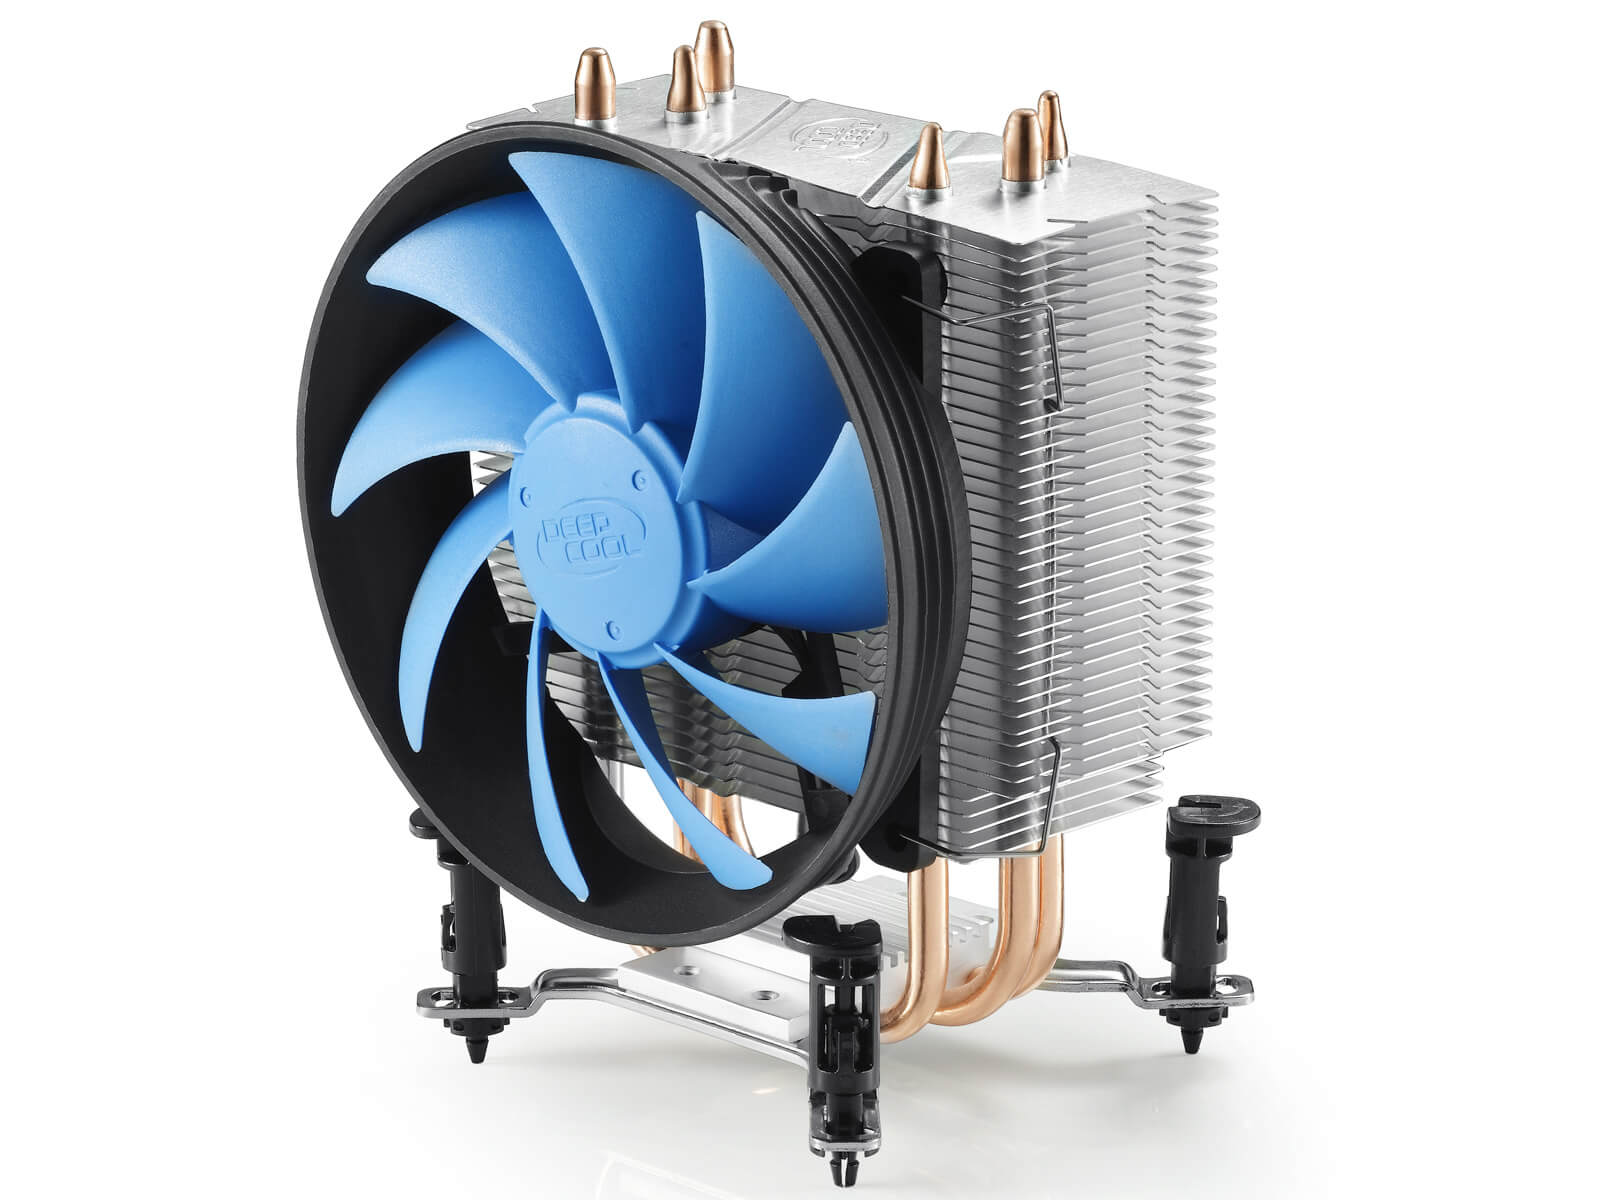 Картинка Кулер Deepcool Gammaxx 300 for Socket1155/1156/1150/1151/775/AM2/AM2+/AM3/AM3+/AM4/FM1/FM2 (130W, PW от магазина NBS Parts